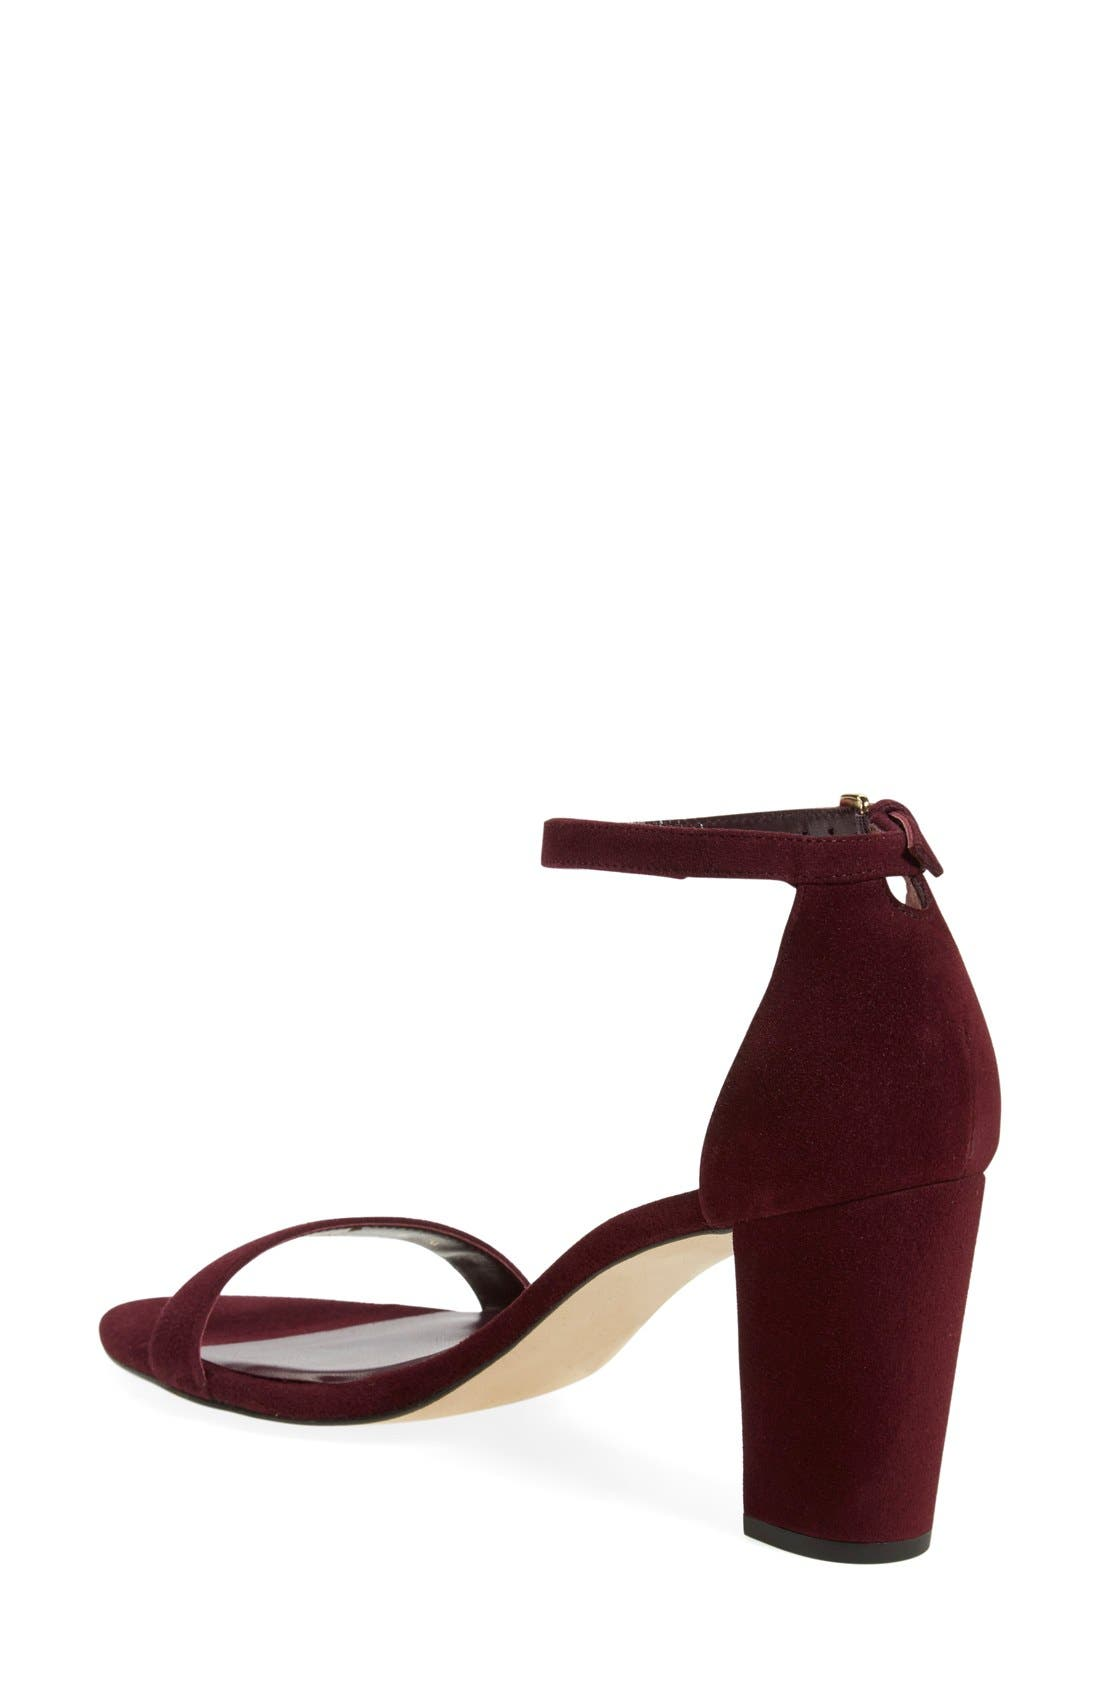 NearlyNude Ankle Strap Sandal,                             Alternate thumbnail 51, color,